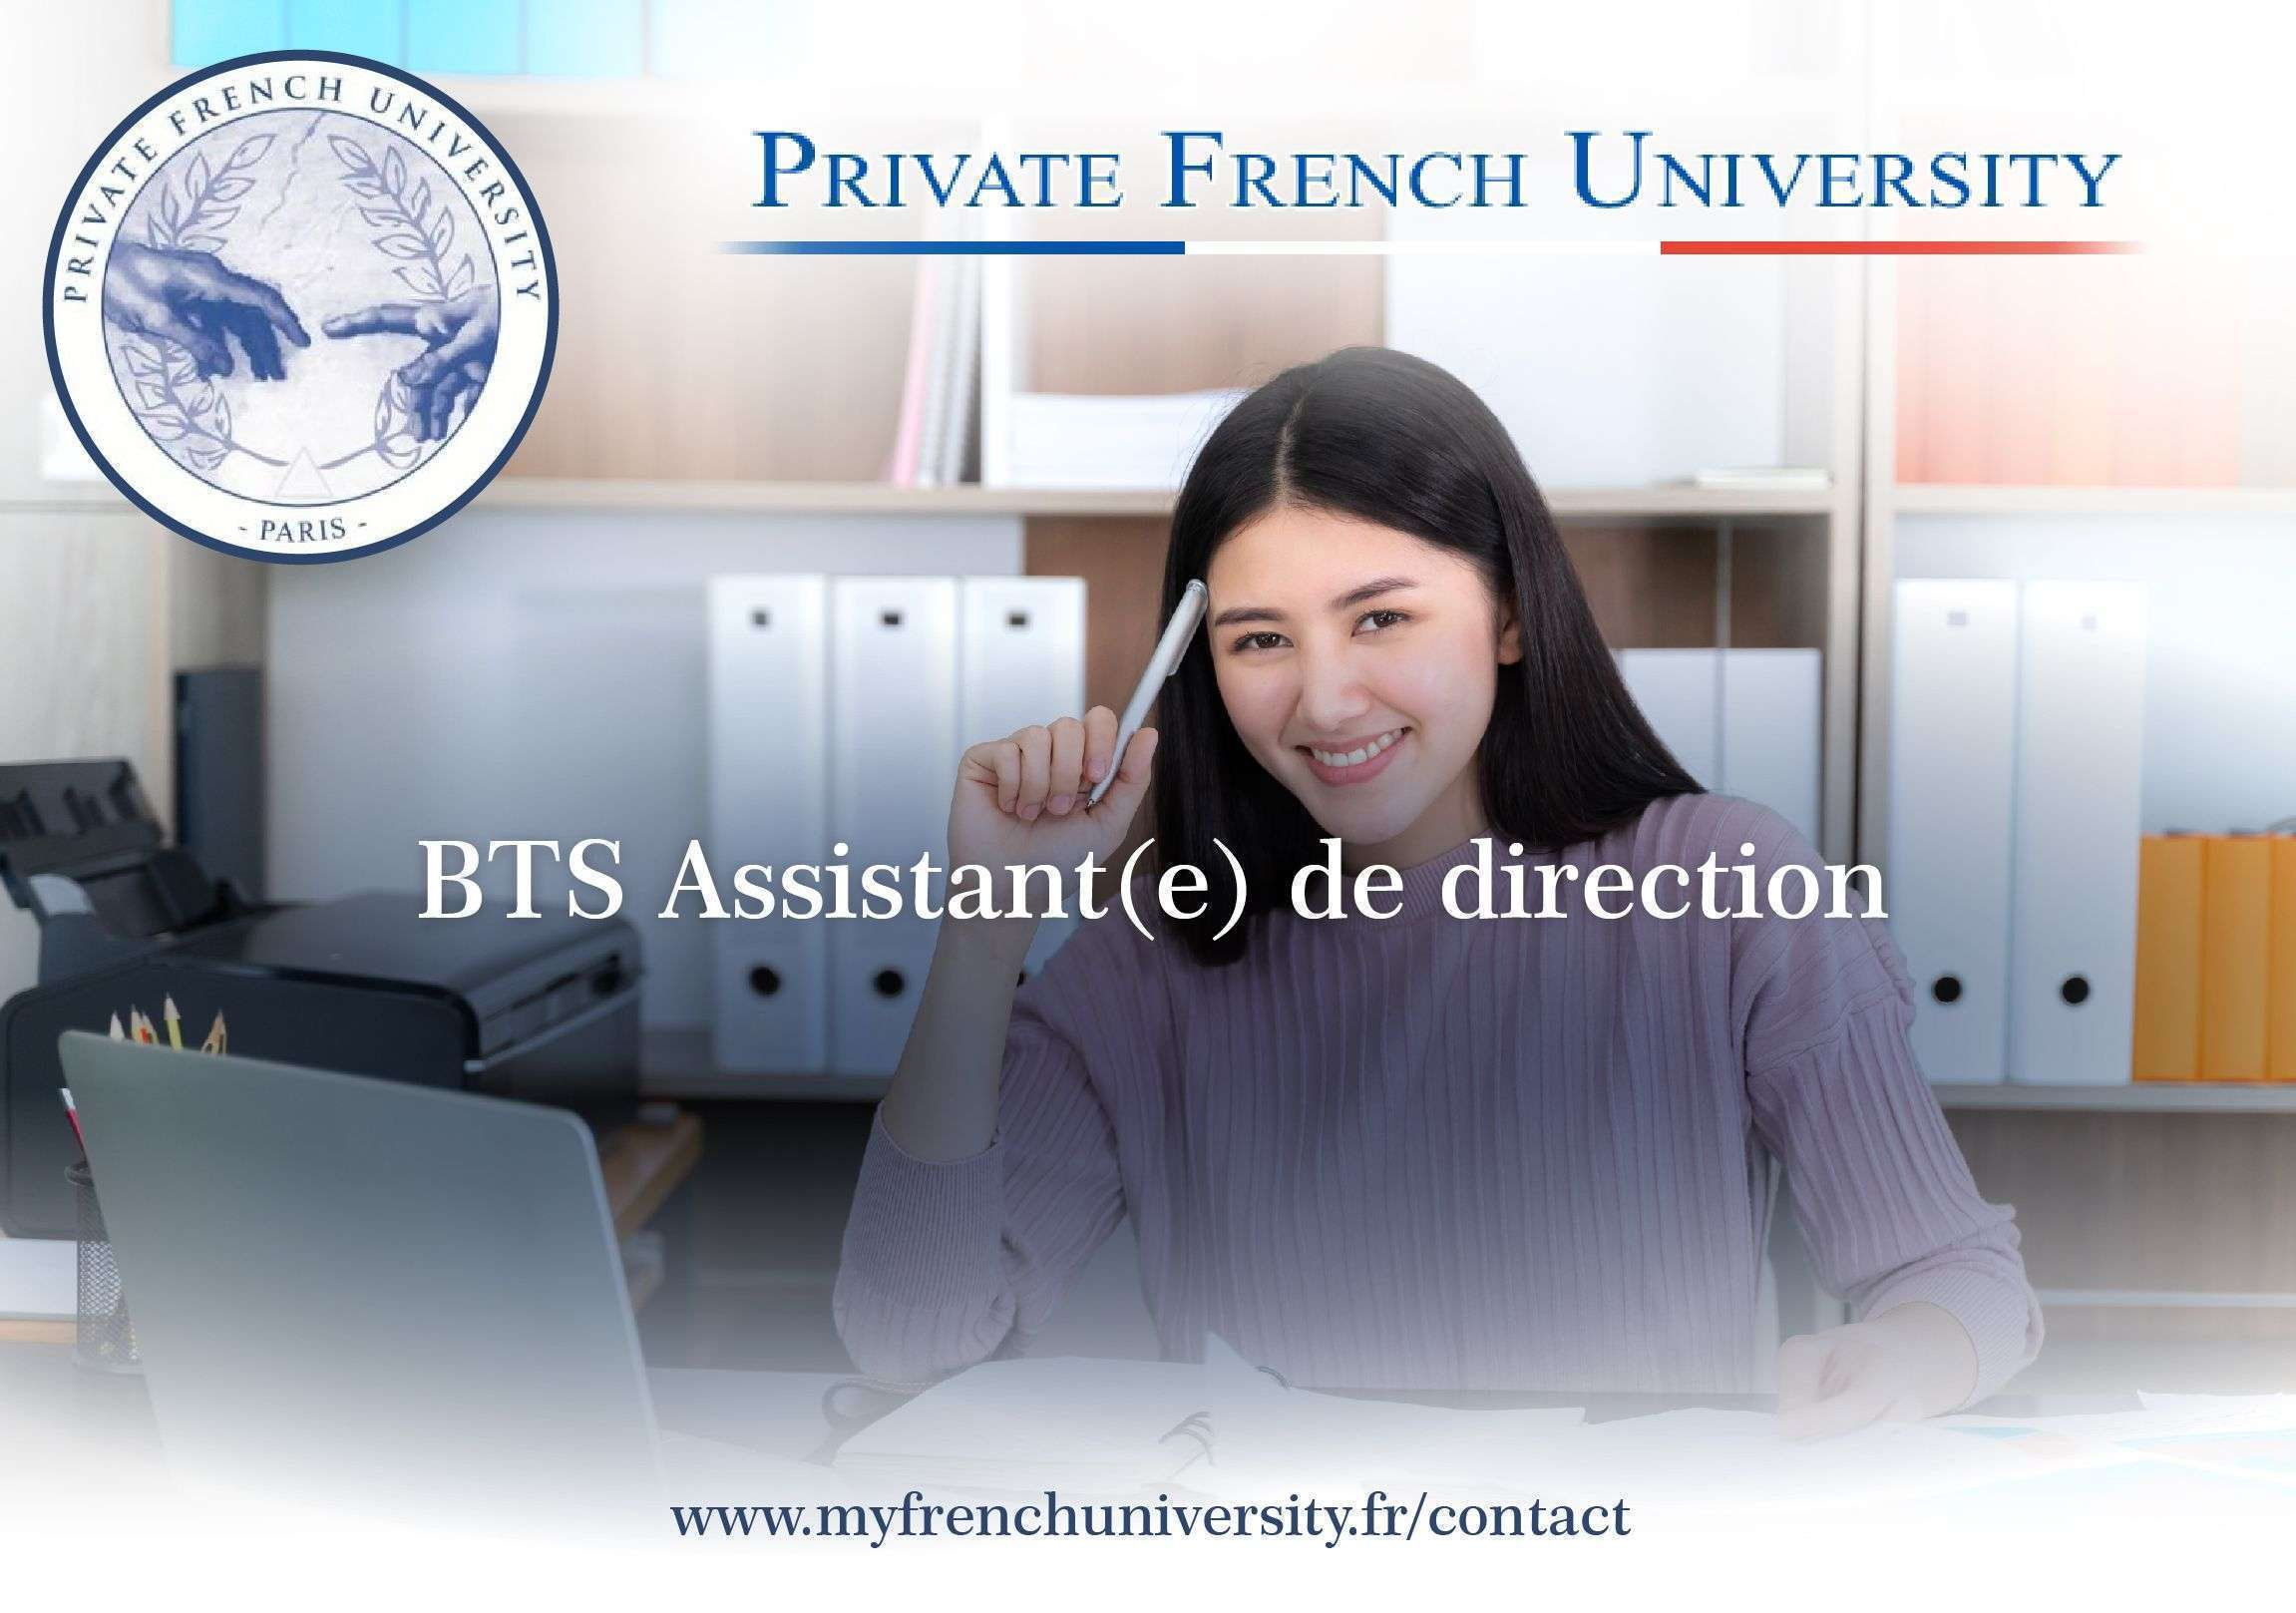 BTS Assistant(e) de direction